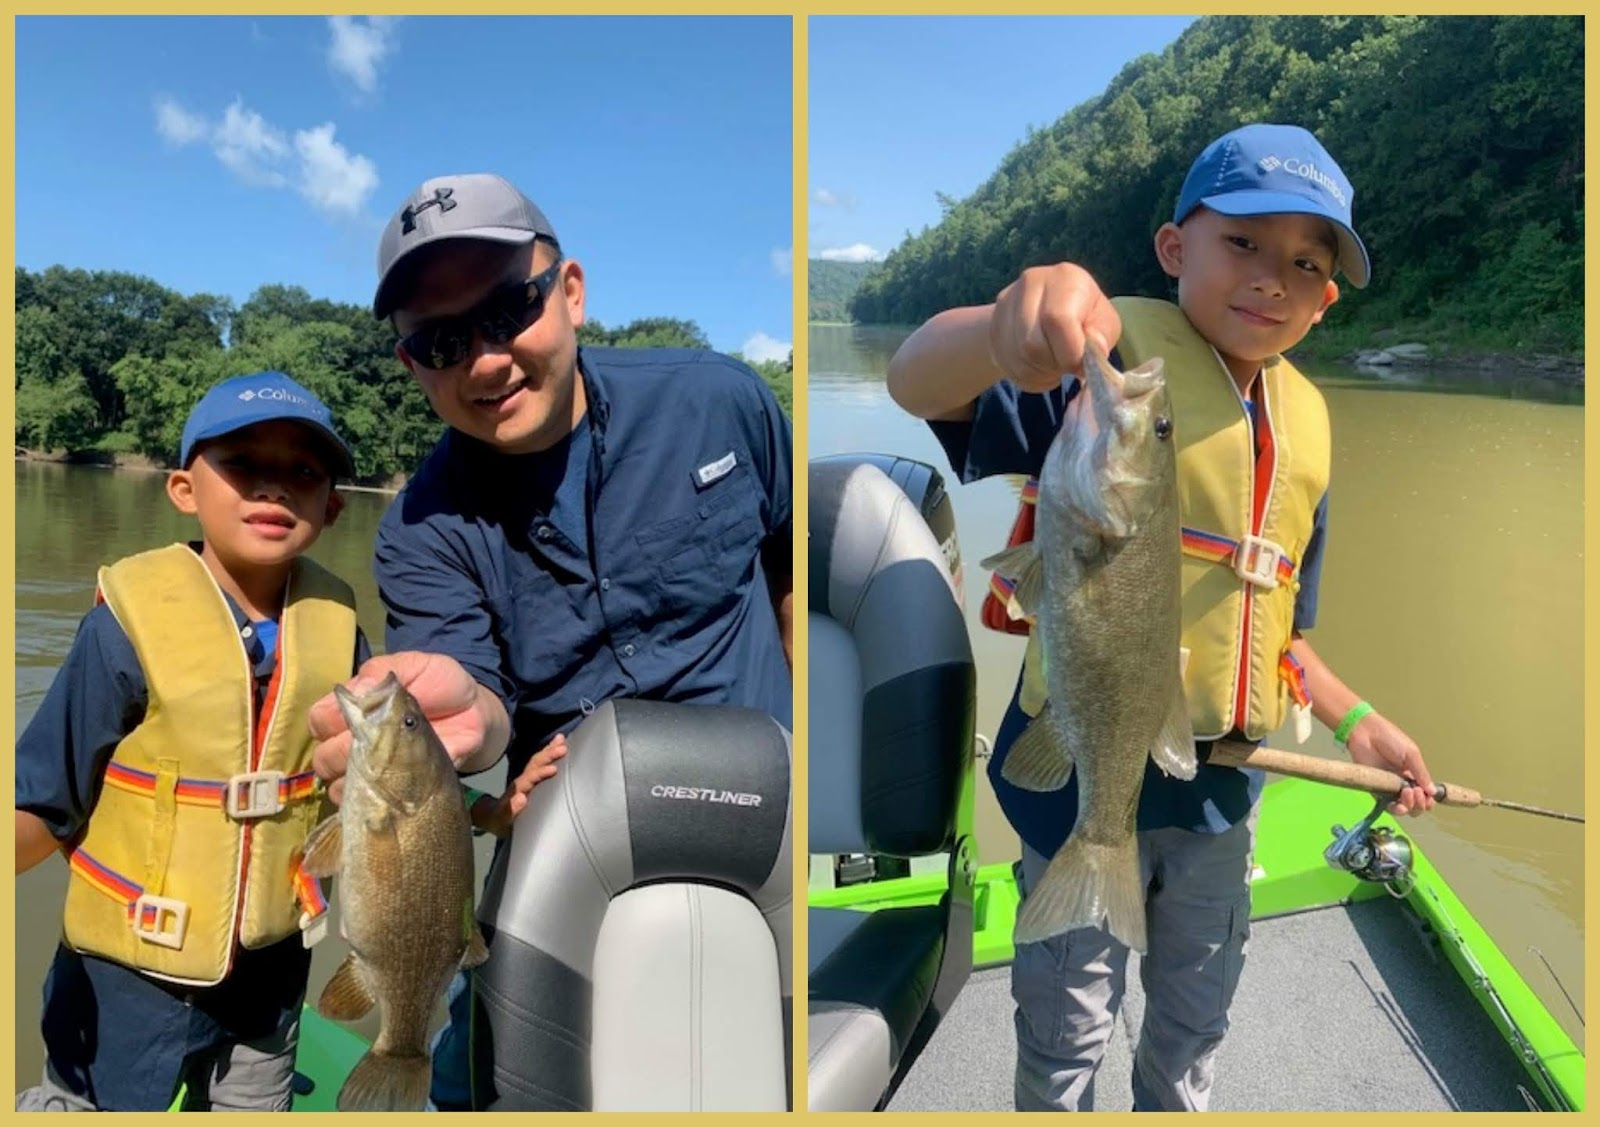 Legends Outdoors - Lake Wallenpaupack and Surrounding Area